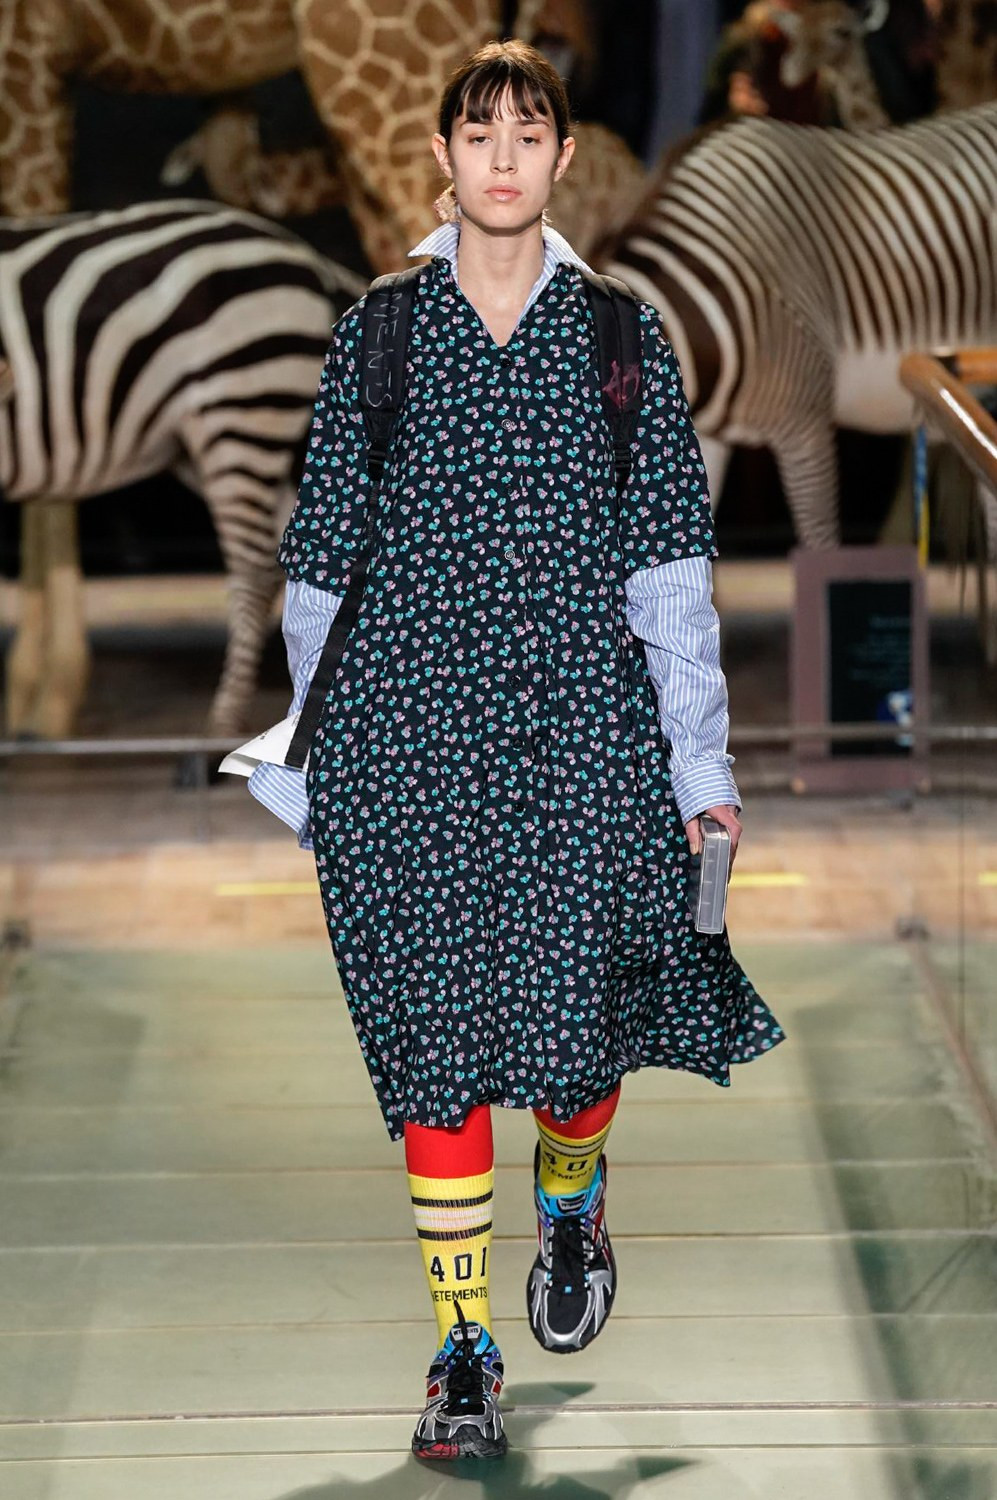 https---vetements-aw19-dtf-magazine.com-image-2019-01-vetements-fall-winter-2019-paris-fashion-week-19